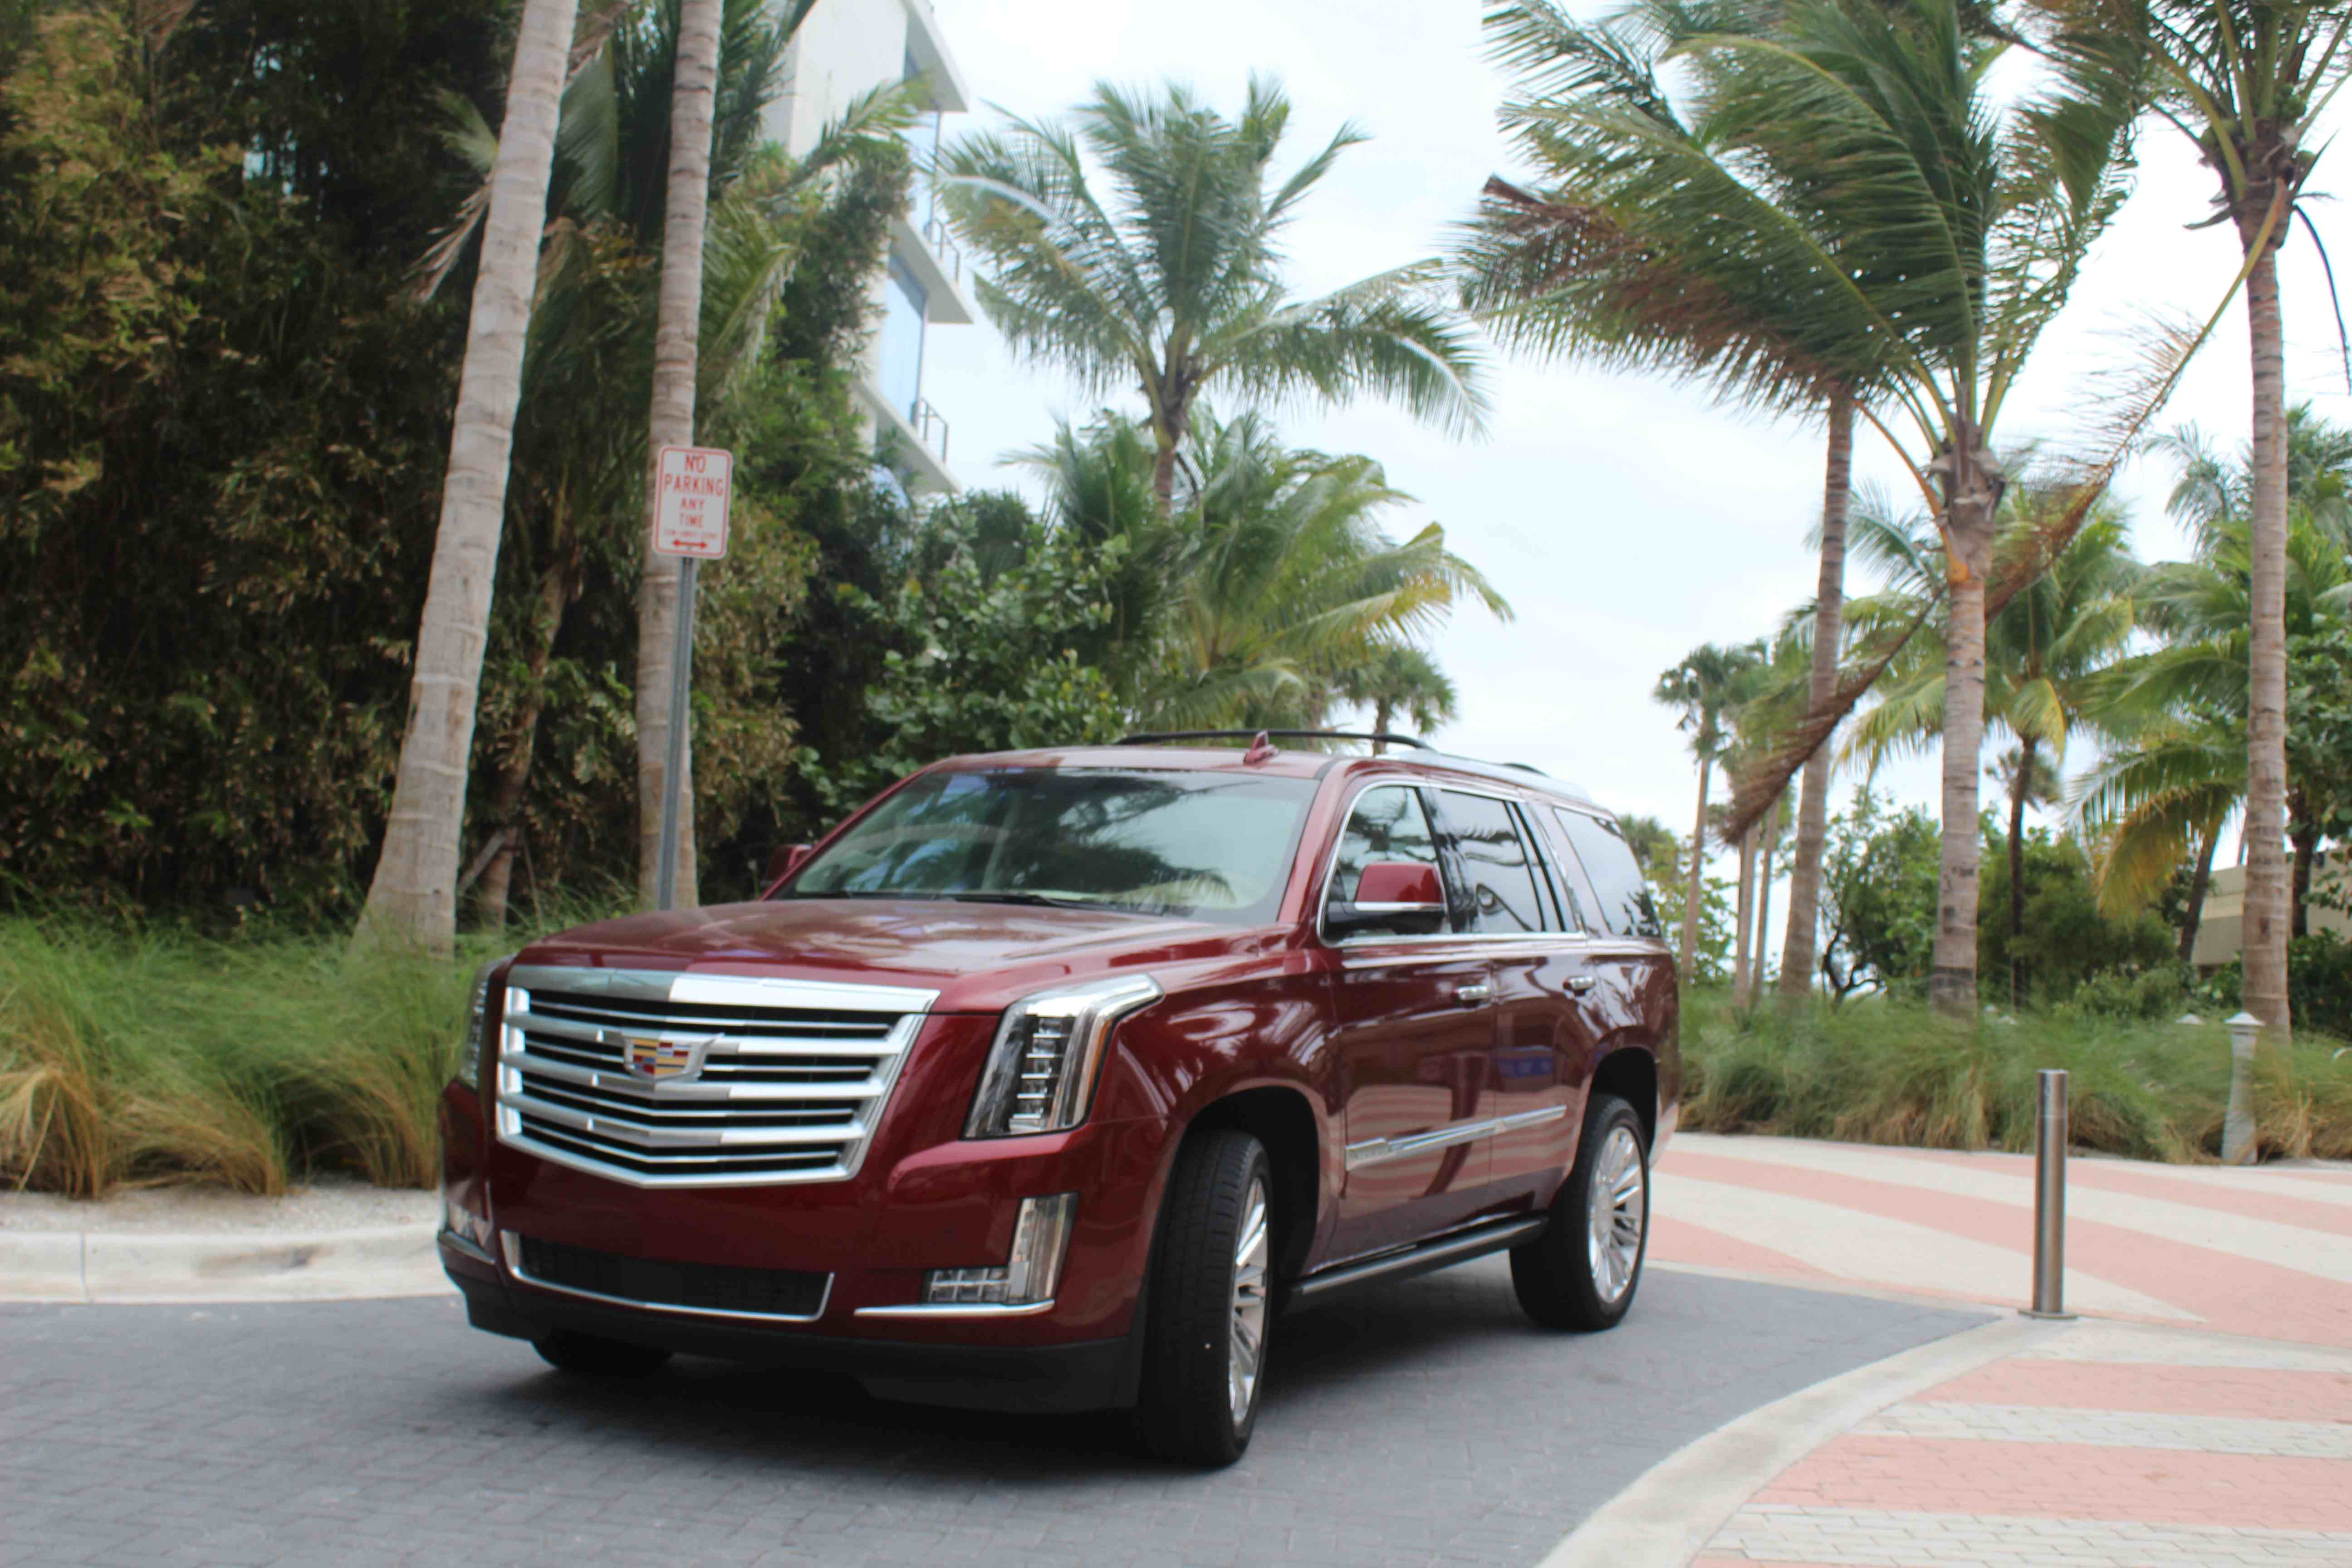 Video: The #PlaybyPlay on the new 2016 Cadillac Escalade ... on cadillac cts, cadillac convertible, cadillac commercial, cadillac eldorado, cadillac dts, cadillac avalanche, cadillac sts, cadillac coupe, cadillac pick up, cadillac srx, cadillac xlr, cadillac professional chassis, cadillac wheels, cadillac navigator, cadillac sub, cadillac models, cadillac ats, cadillac luxury, cadillac suv, cadillac brougham,